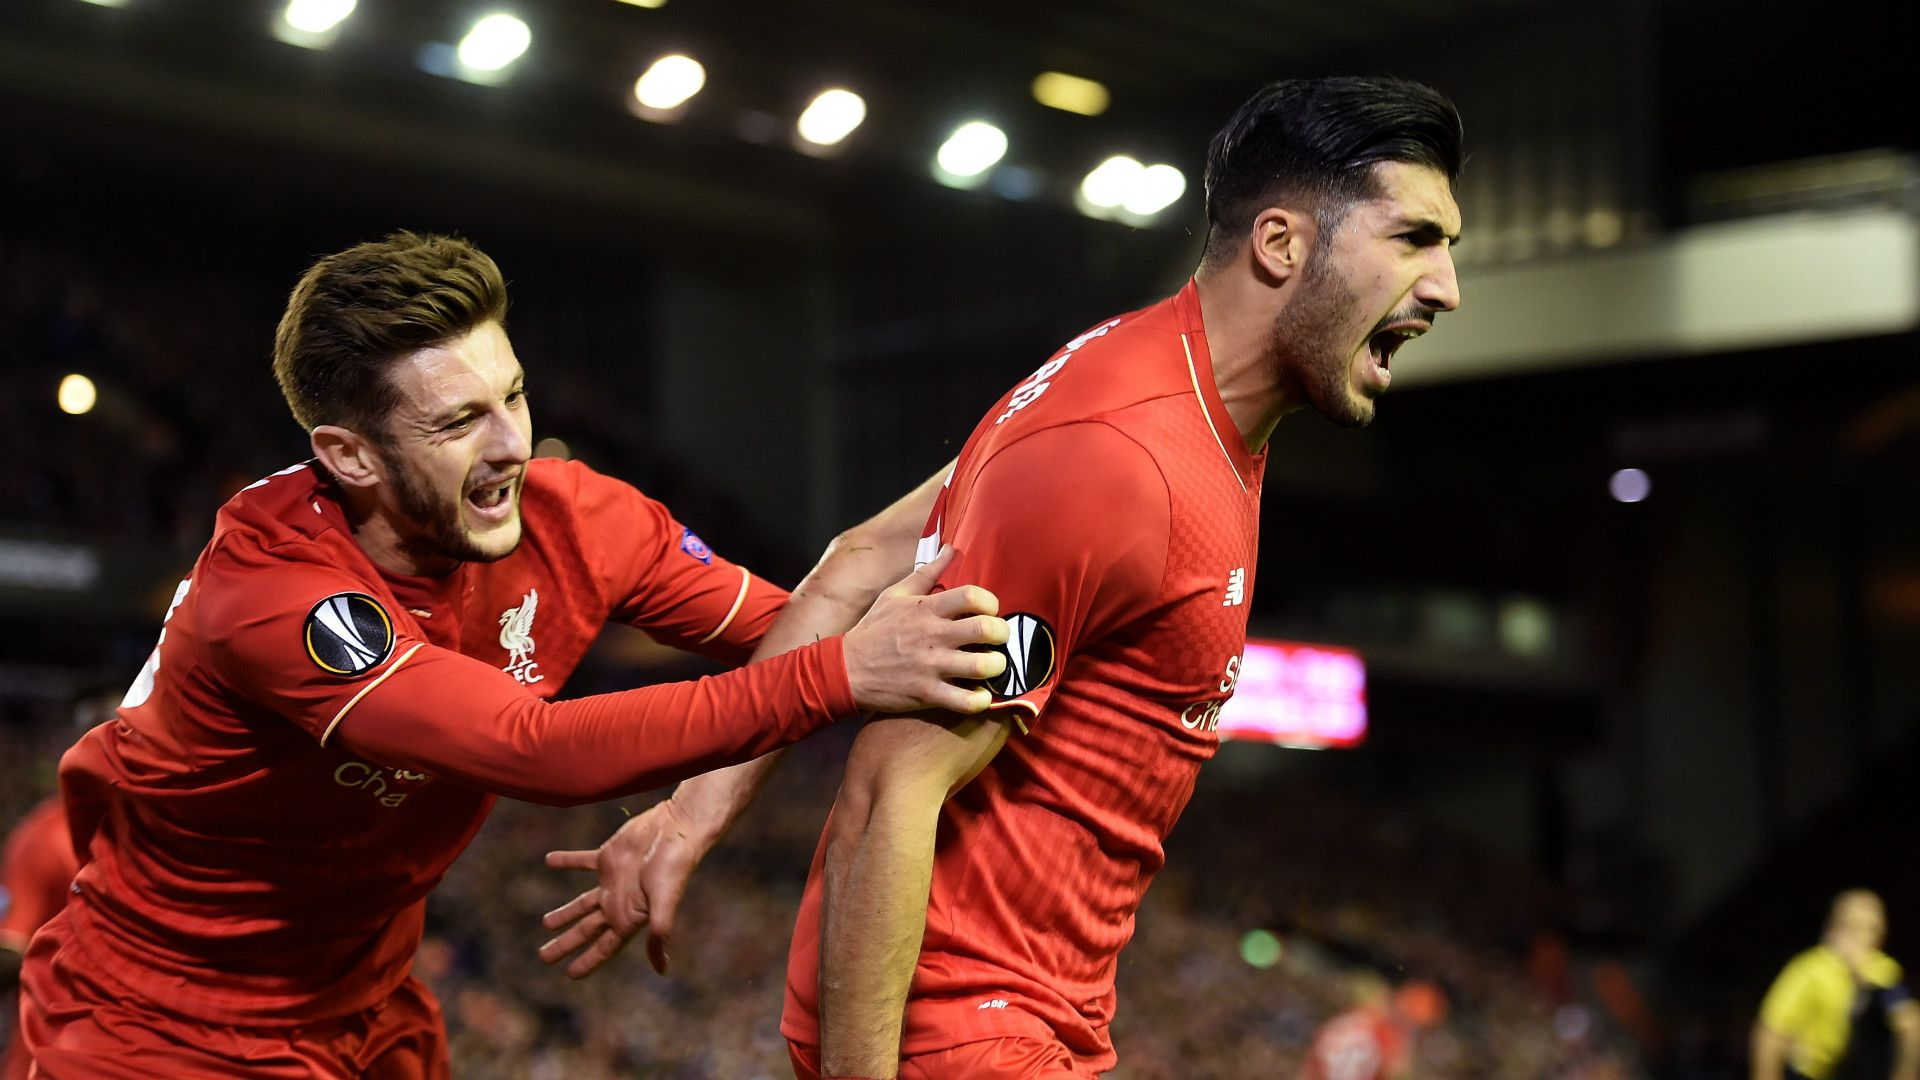 """Emre Can scoring the first goal of the Jürgen Klopp's era! (during the poor game against Rubin Kazan) """"A German scores for THE German!"""" : this might have a highly symbolic meaning who knows?... :)"""